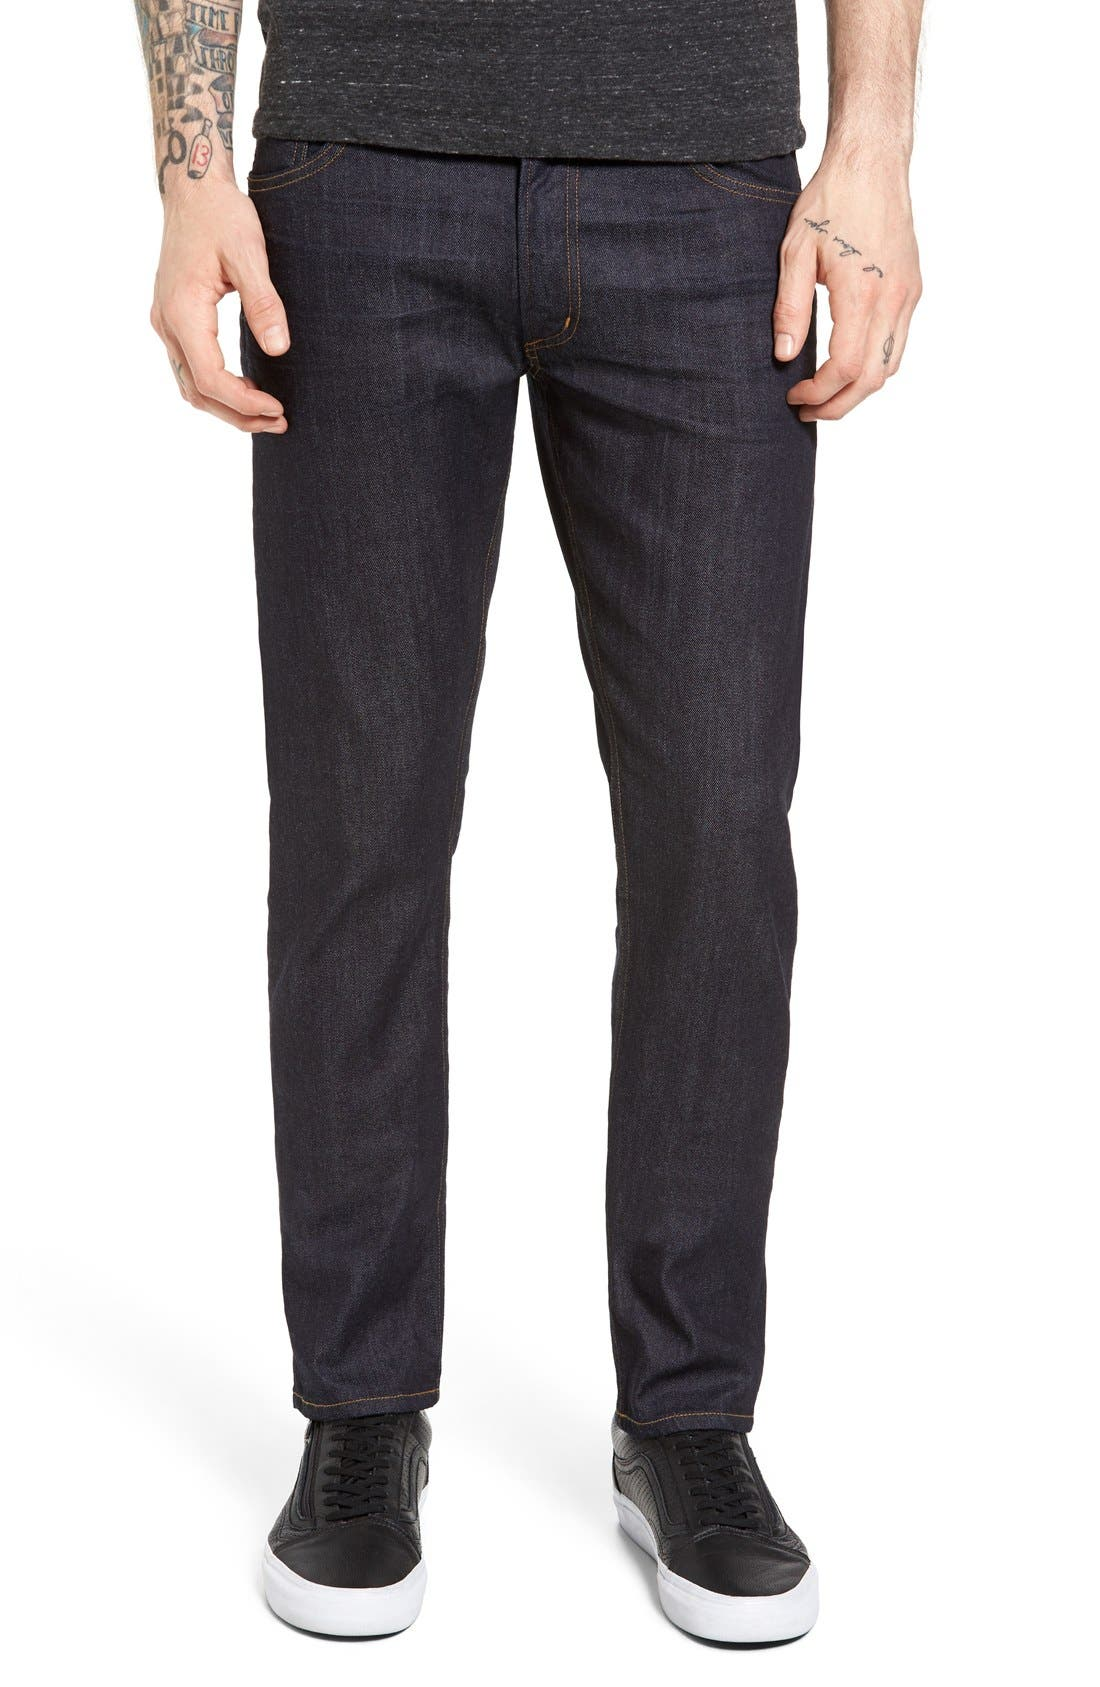 Bowery Slim Fit Jeans,                             Main thumbnail 1, color,                             432